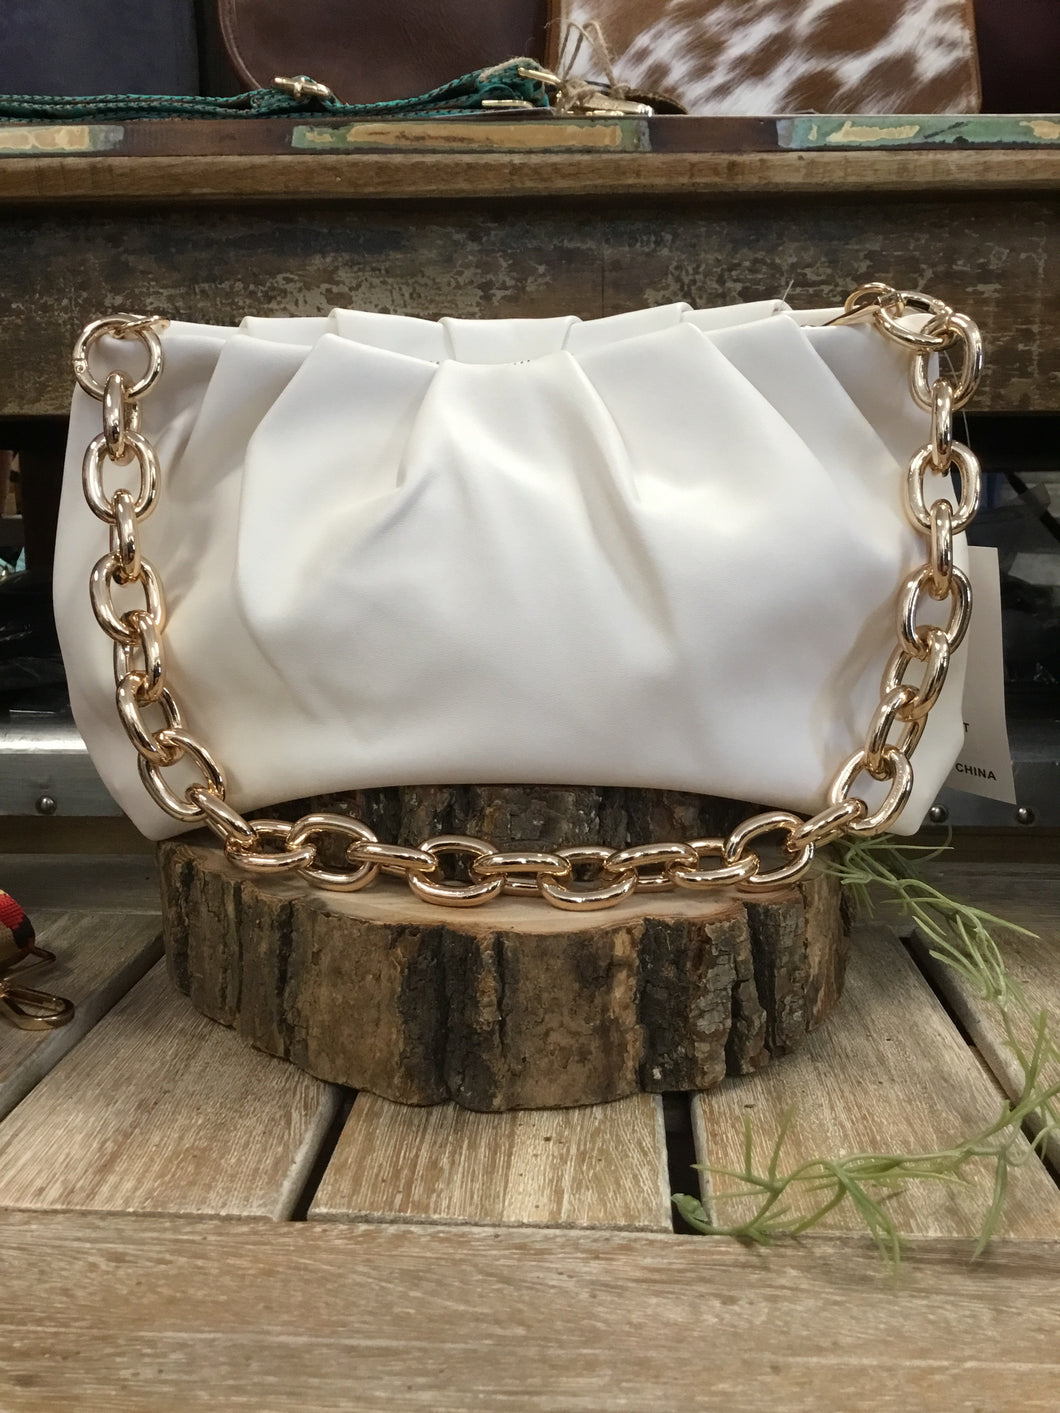 Ahdorned Faux Leather Chain Bag White